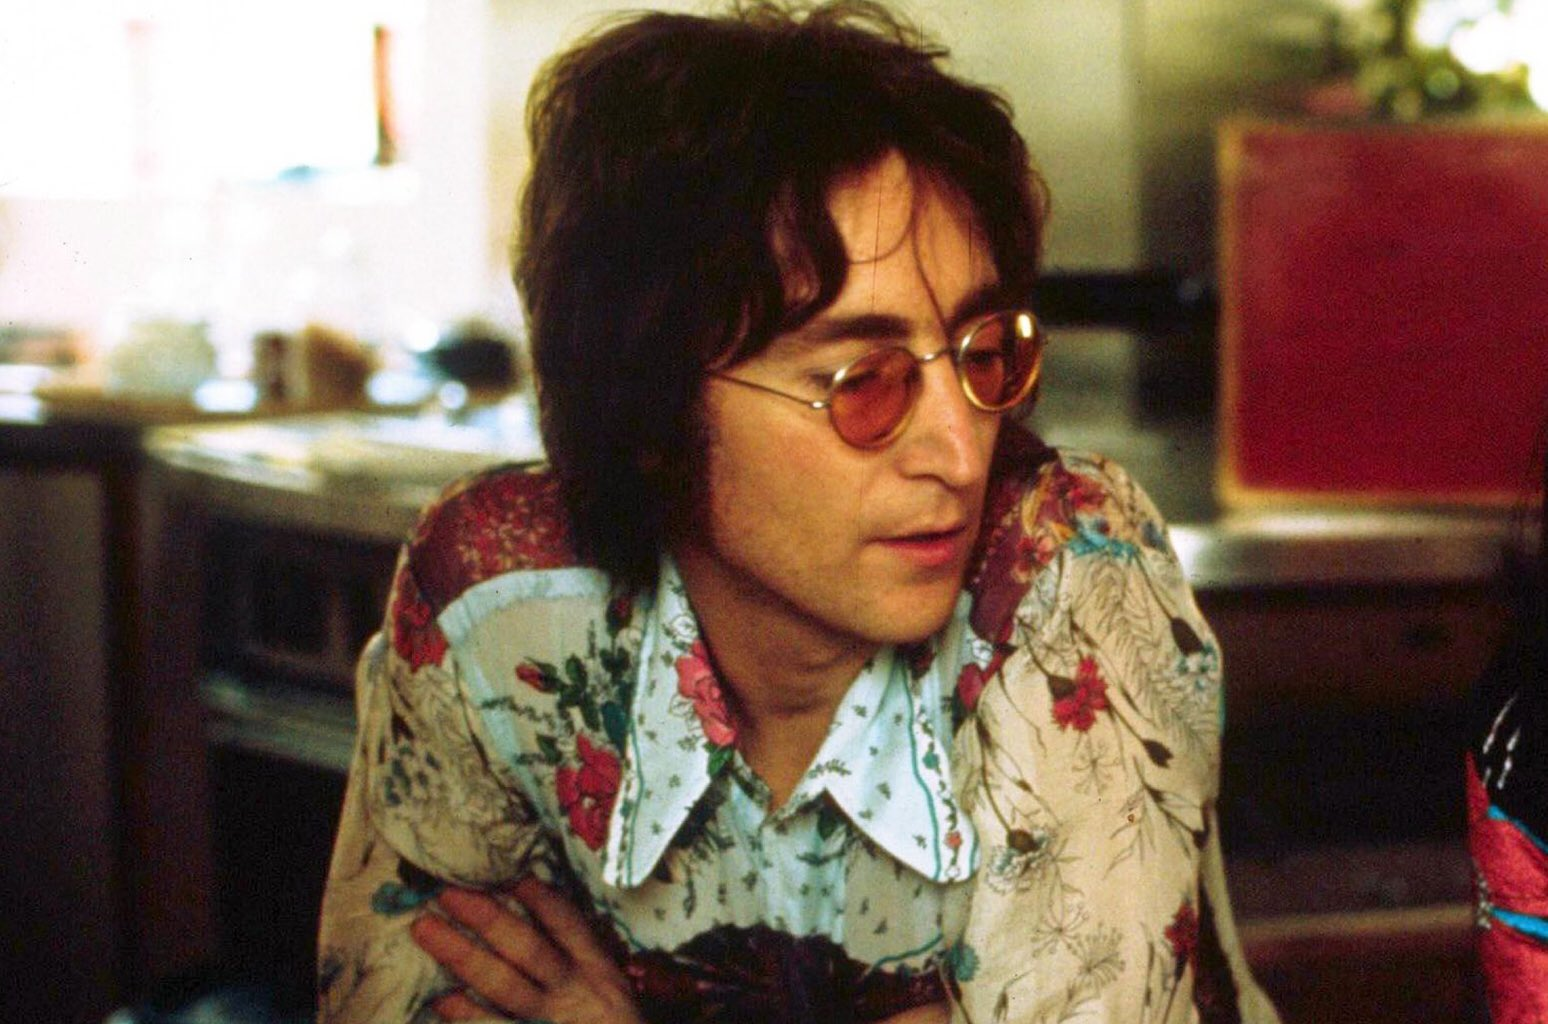 Happy birthday to the legend john lennon!